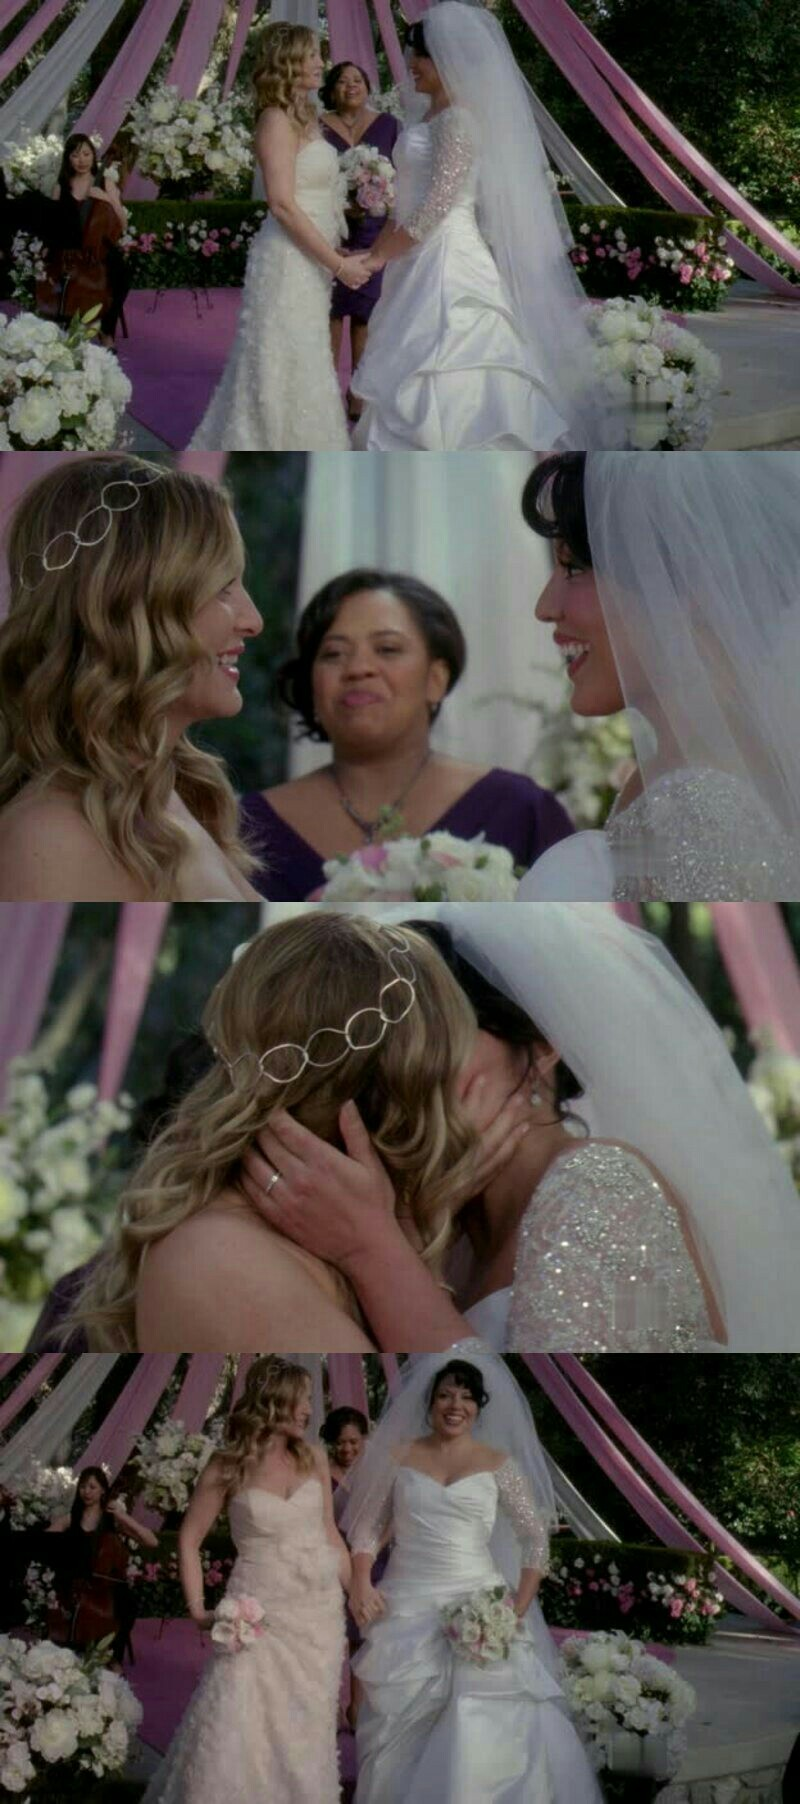 calzona is so fucking cute ❤ I love these two so much 😭💗